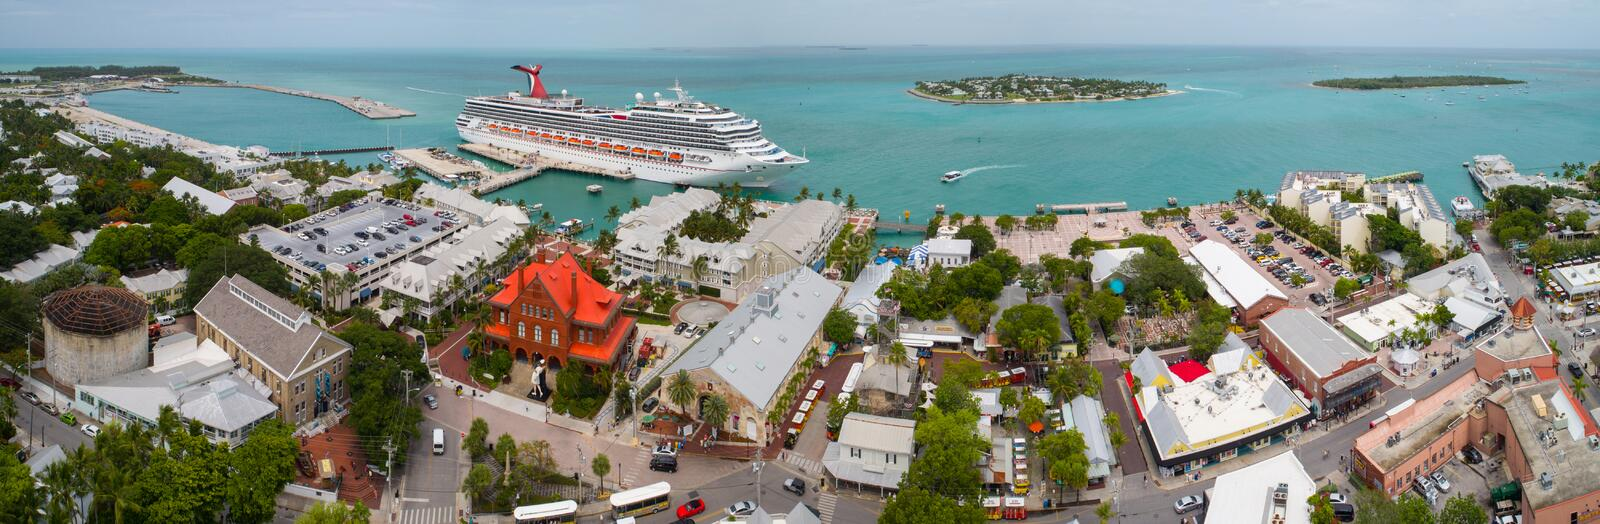 Immagine aerea di Mallory Square Key West FL fotografia stock